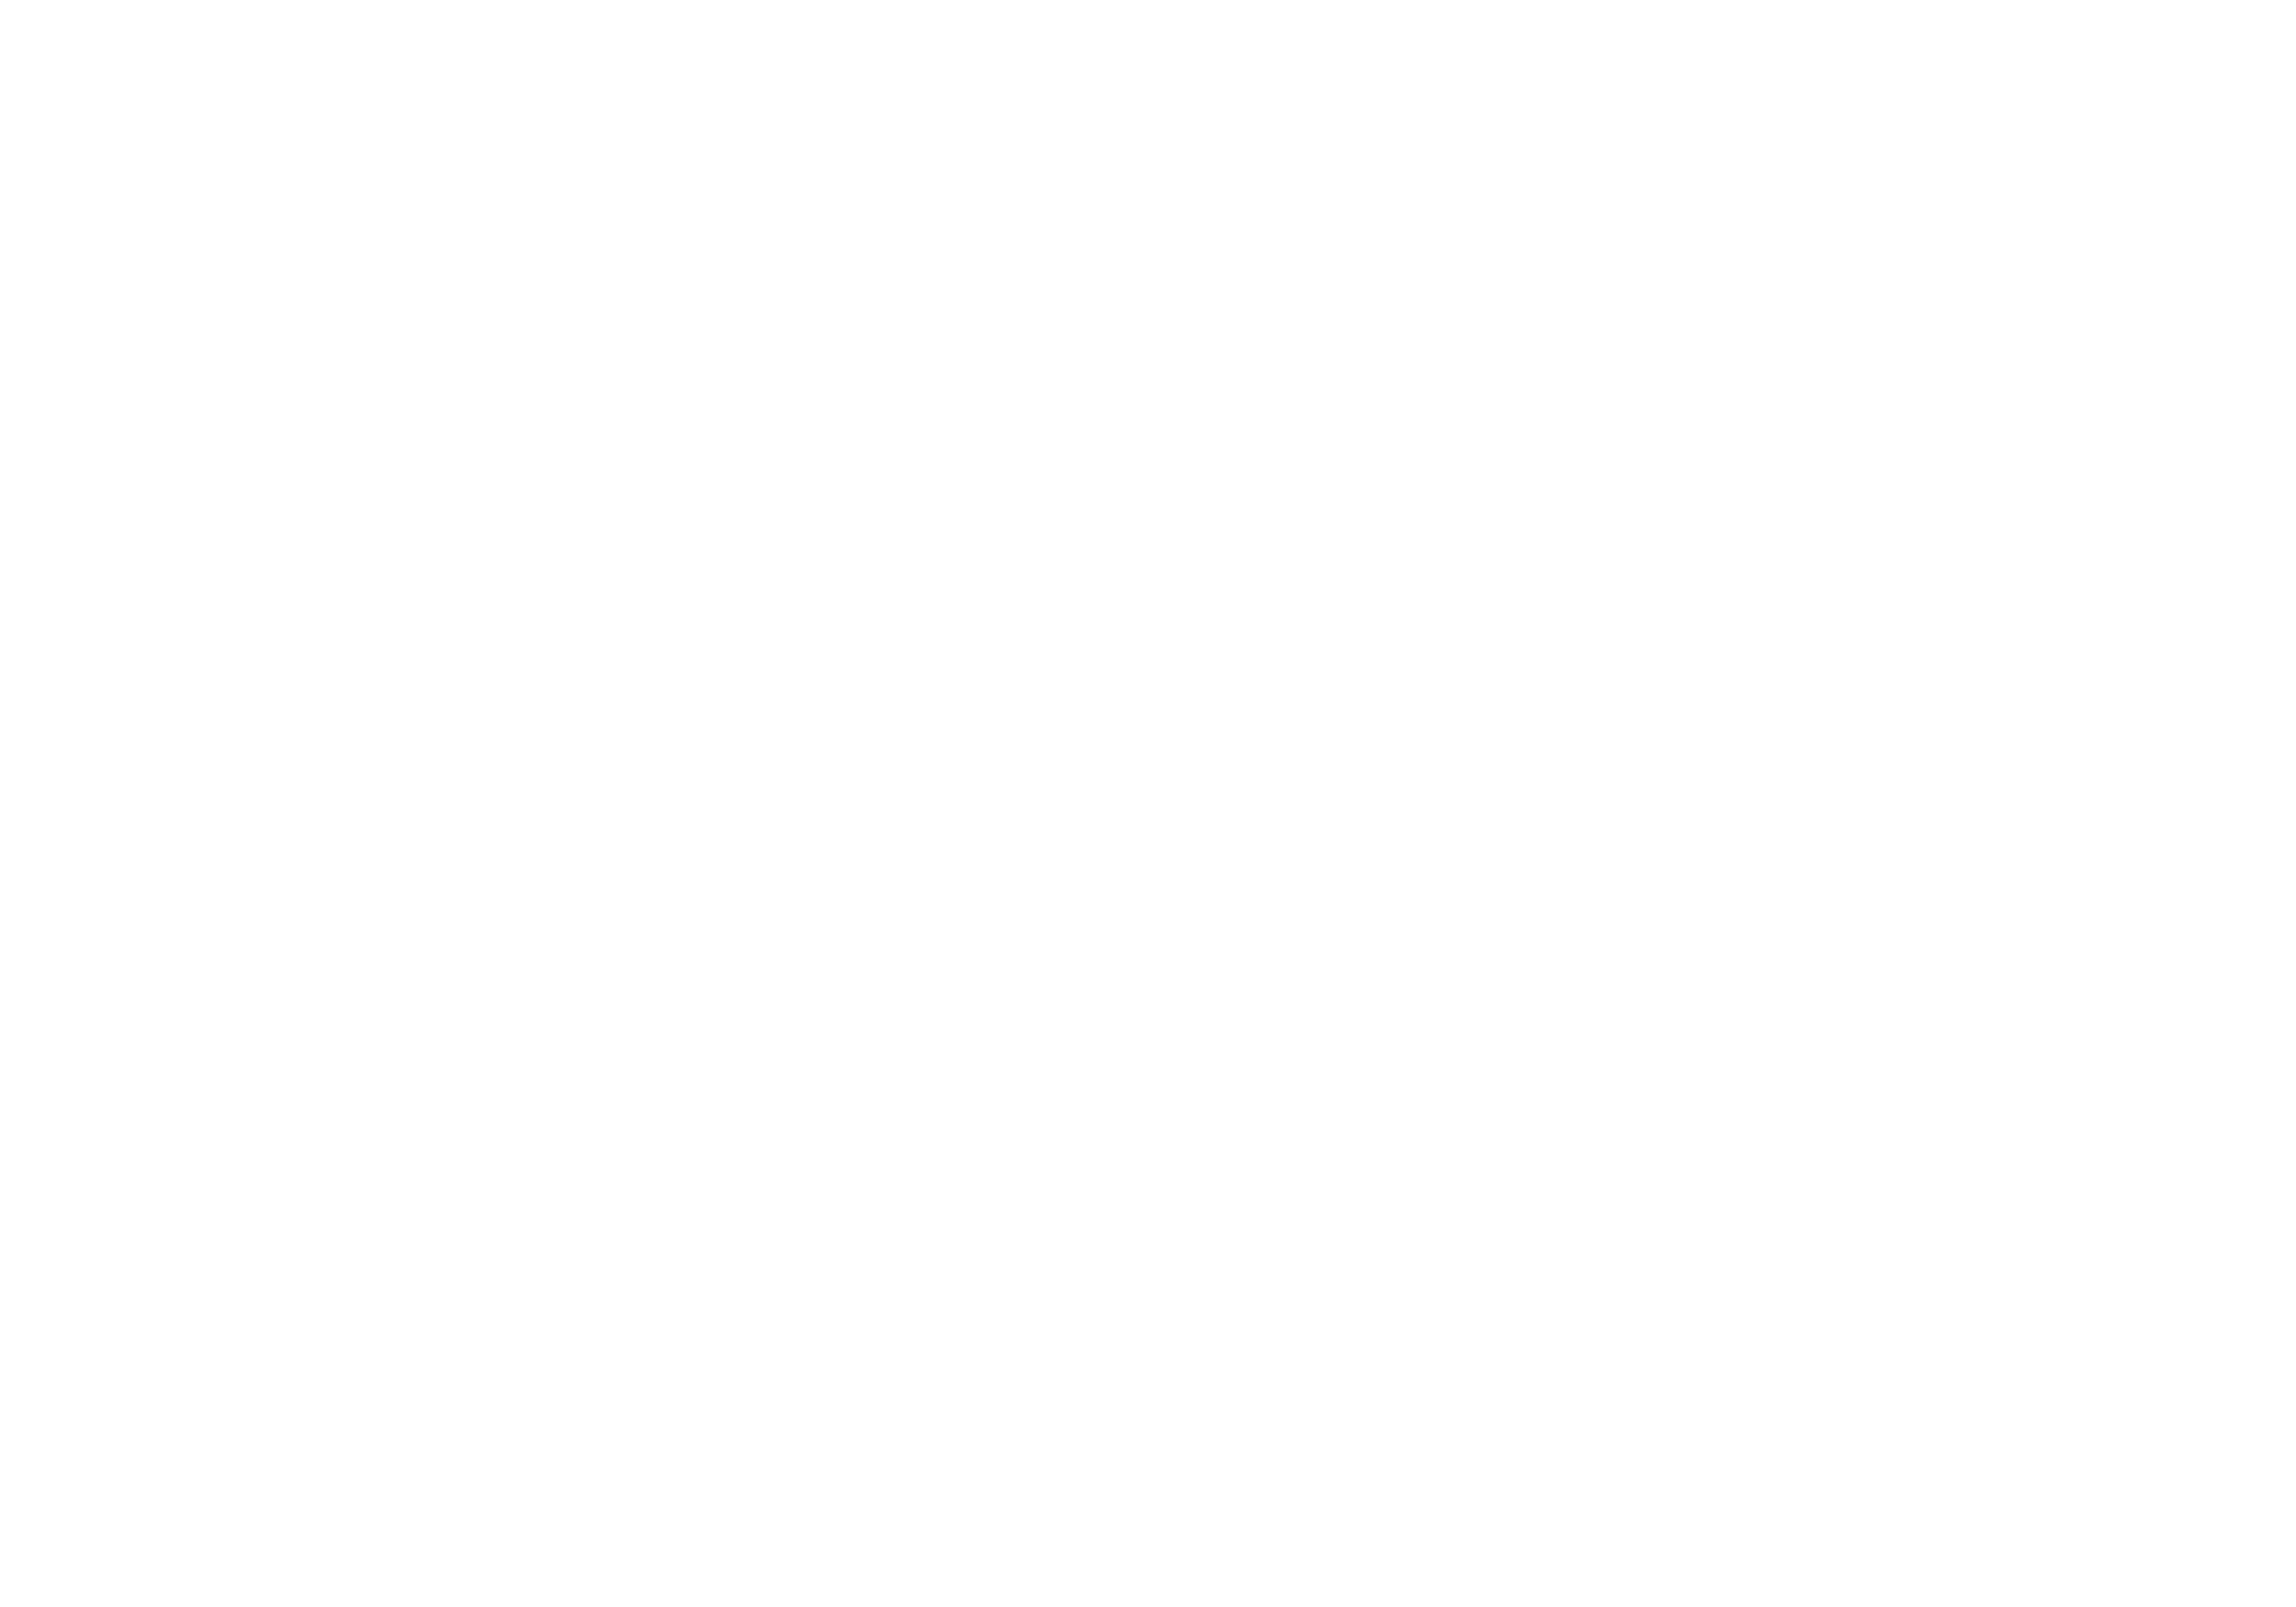 EUROCRAFT-white-transparent-1.png